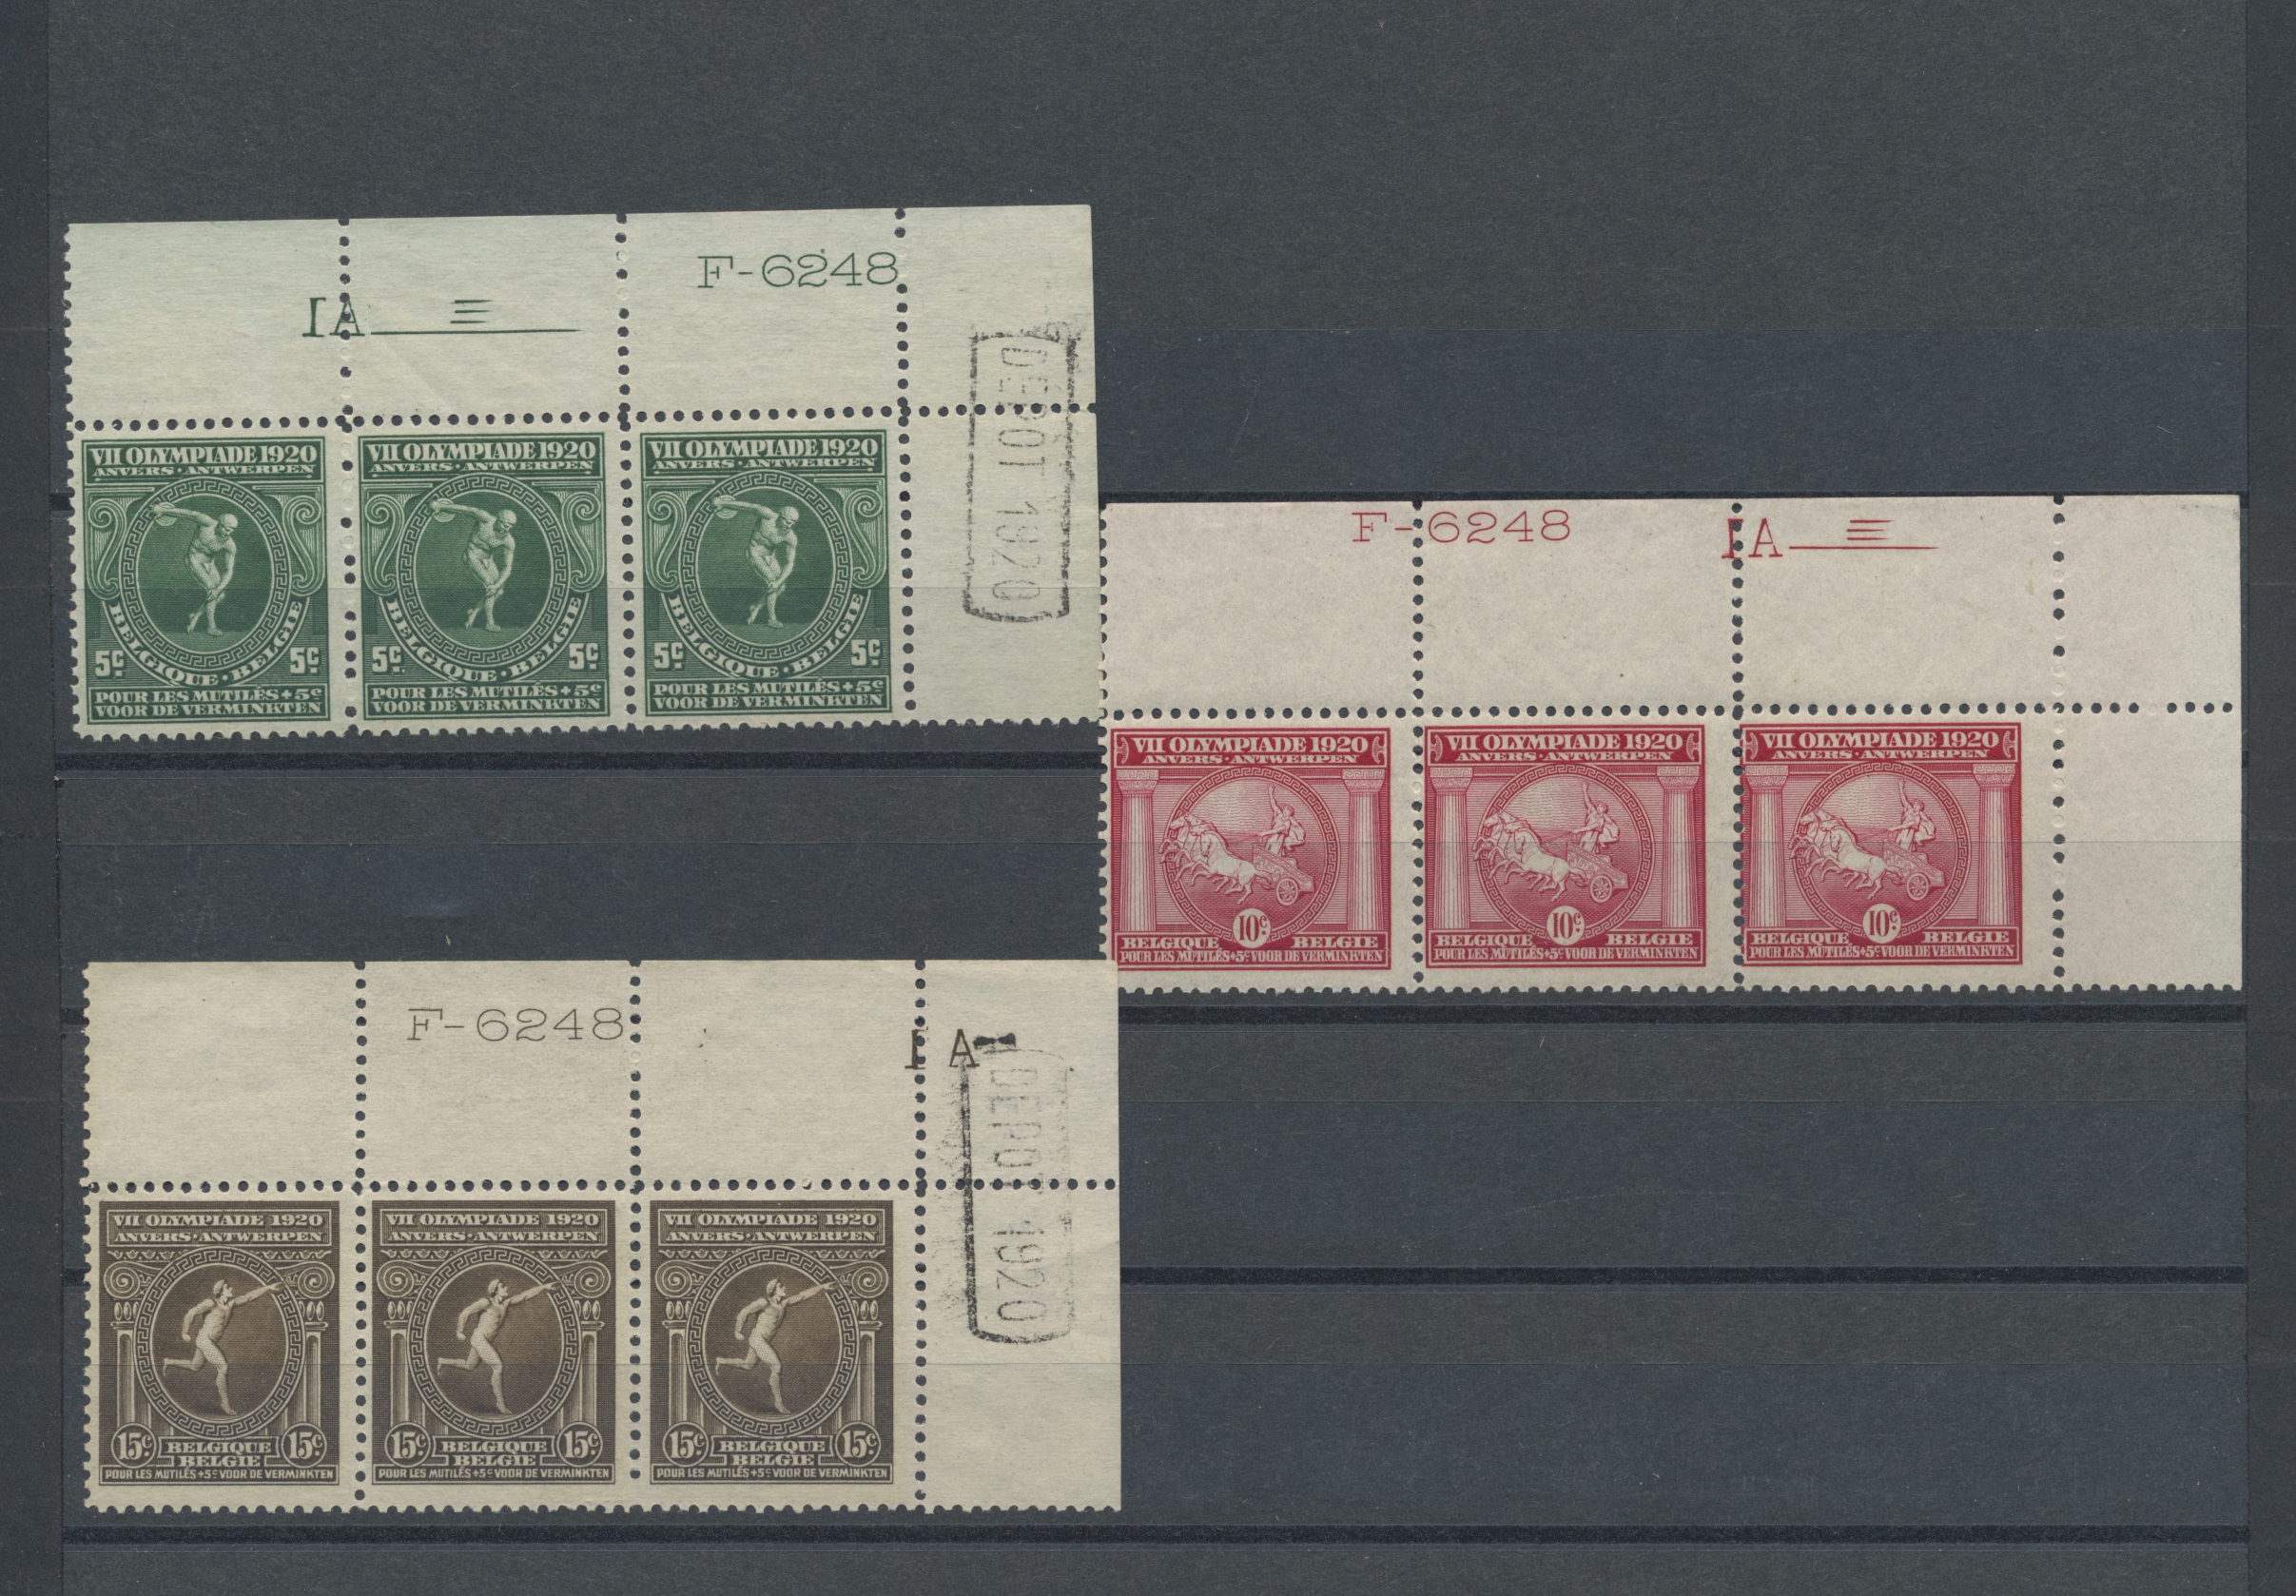 Lot 15653 - thematik: olympische spiele / olympic games  -  Auktionshaus Christoph Gärtner GmbH & Co. KG Sale #48 collections Overseas  Airmail / Ship mail & Thematics